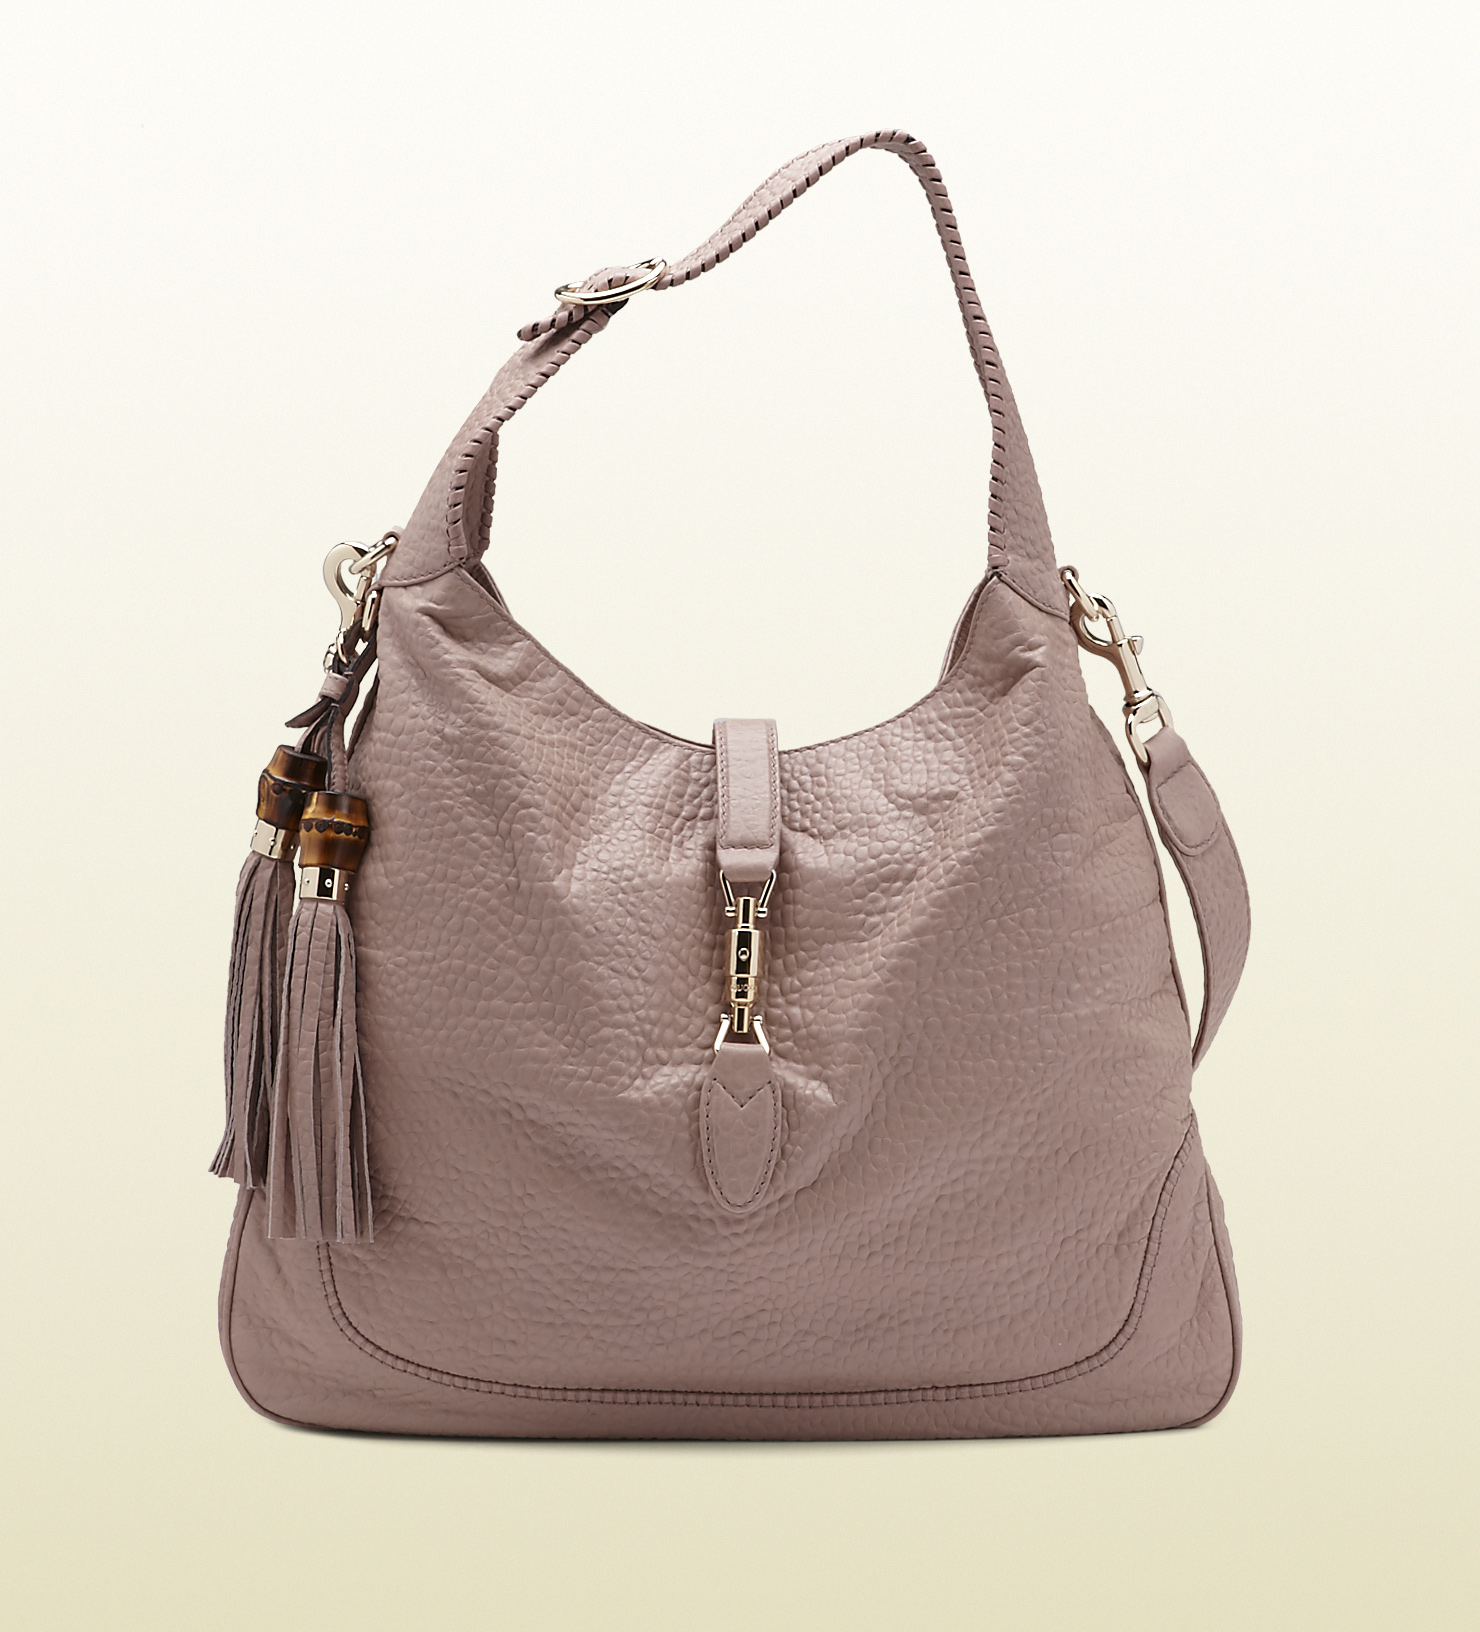 Gucci New Jackie Light Pink Grainy Leather Shoulder Bag in ...